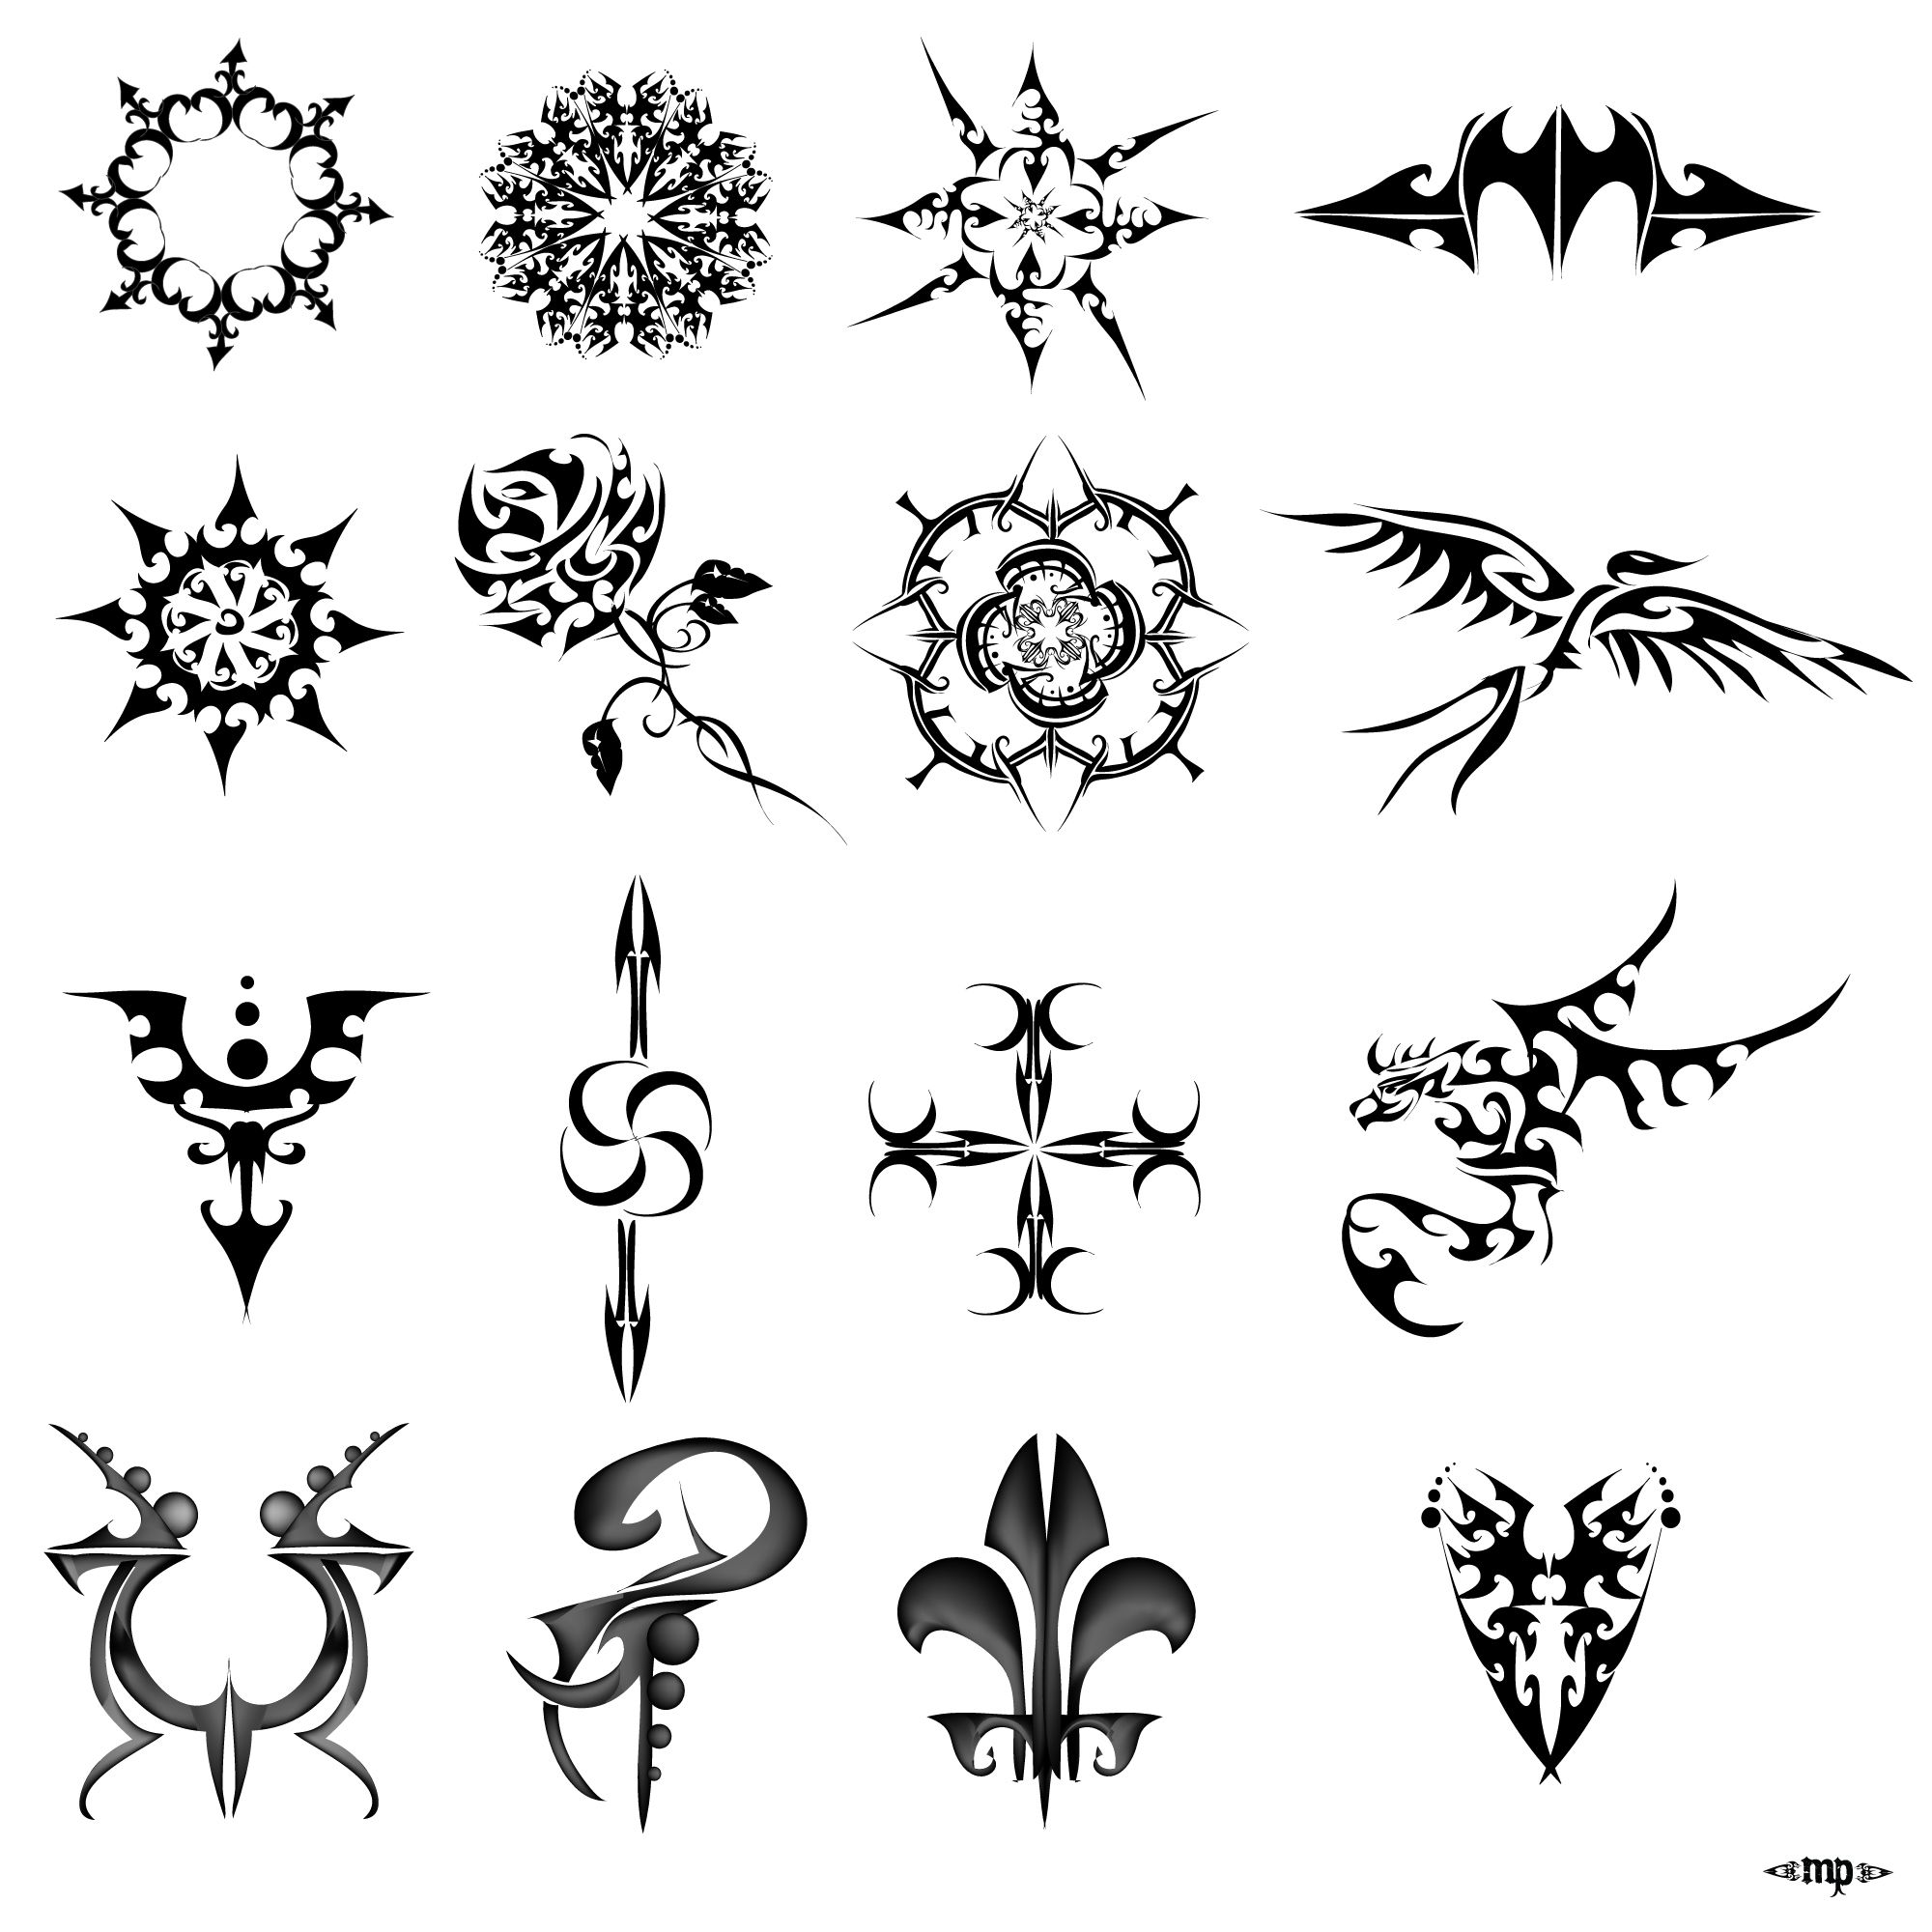 Tattoo design ideas cool tattoo ideas - Click The Pin For More Awesome Tattoo Designs